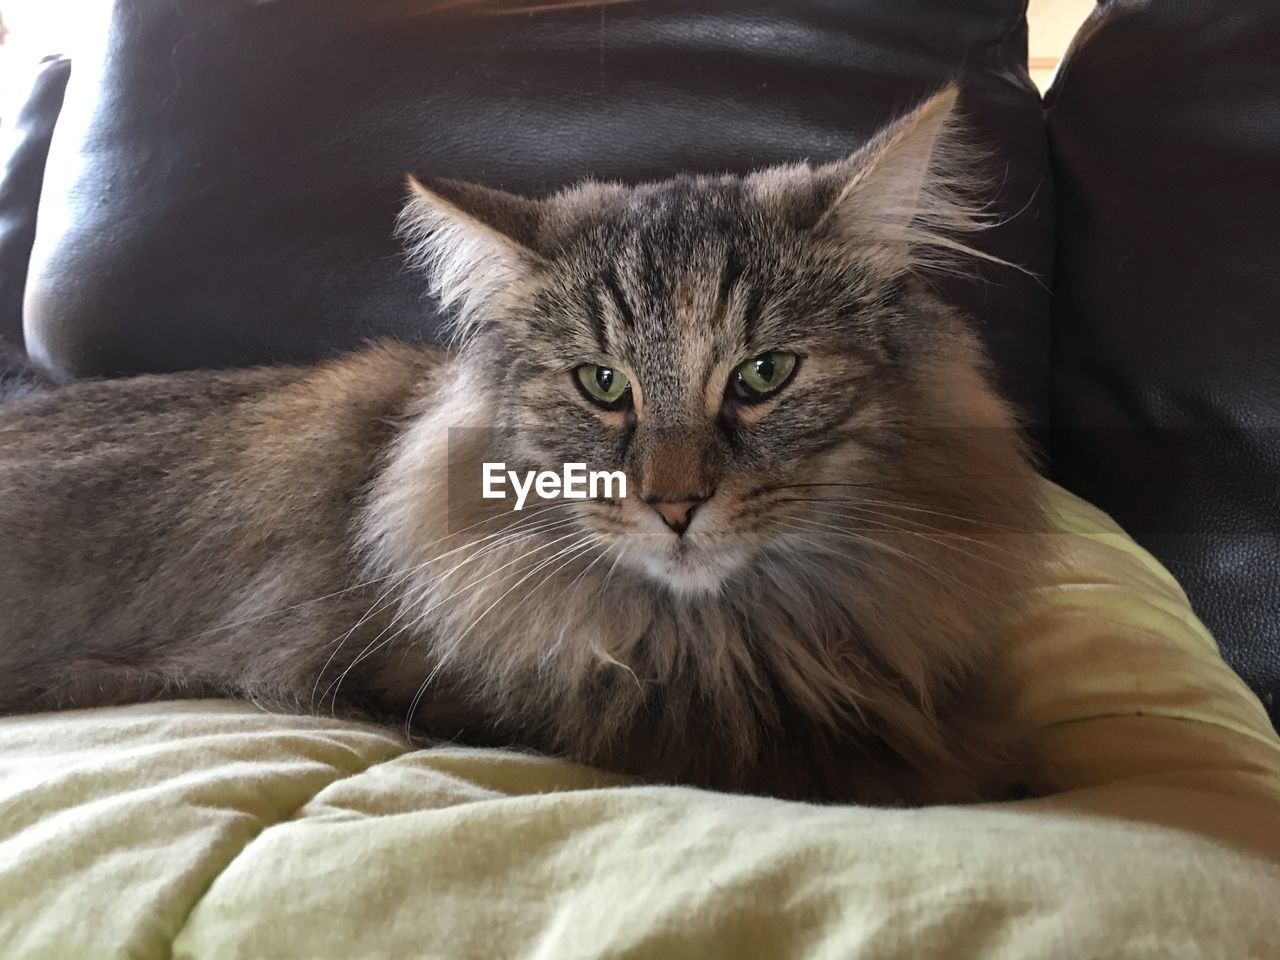 domestic, pets, domestic animals, cat, animal themes, mammal, animal, one animal, domestic cat, feline, vertebrate, furniture, indoors, looking at camera, relaxation, portrait, bed, no people, whisker, close-up